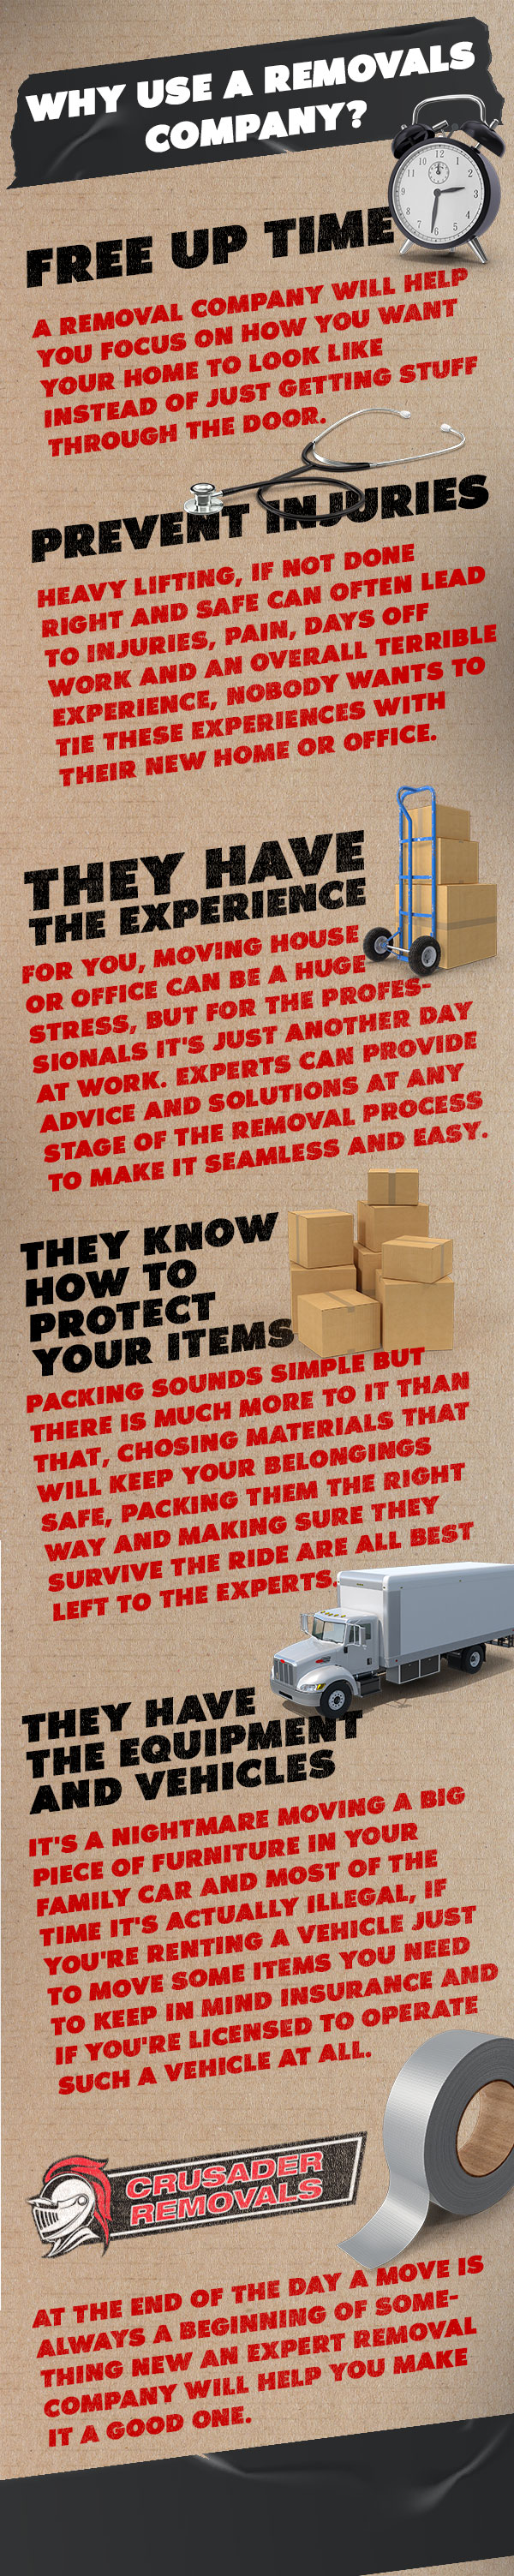 Why Use a Removals Company